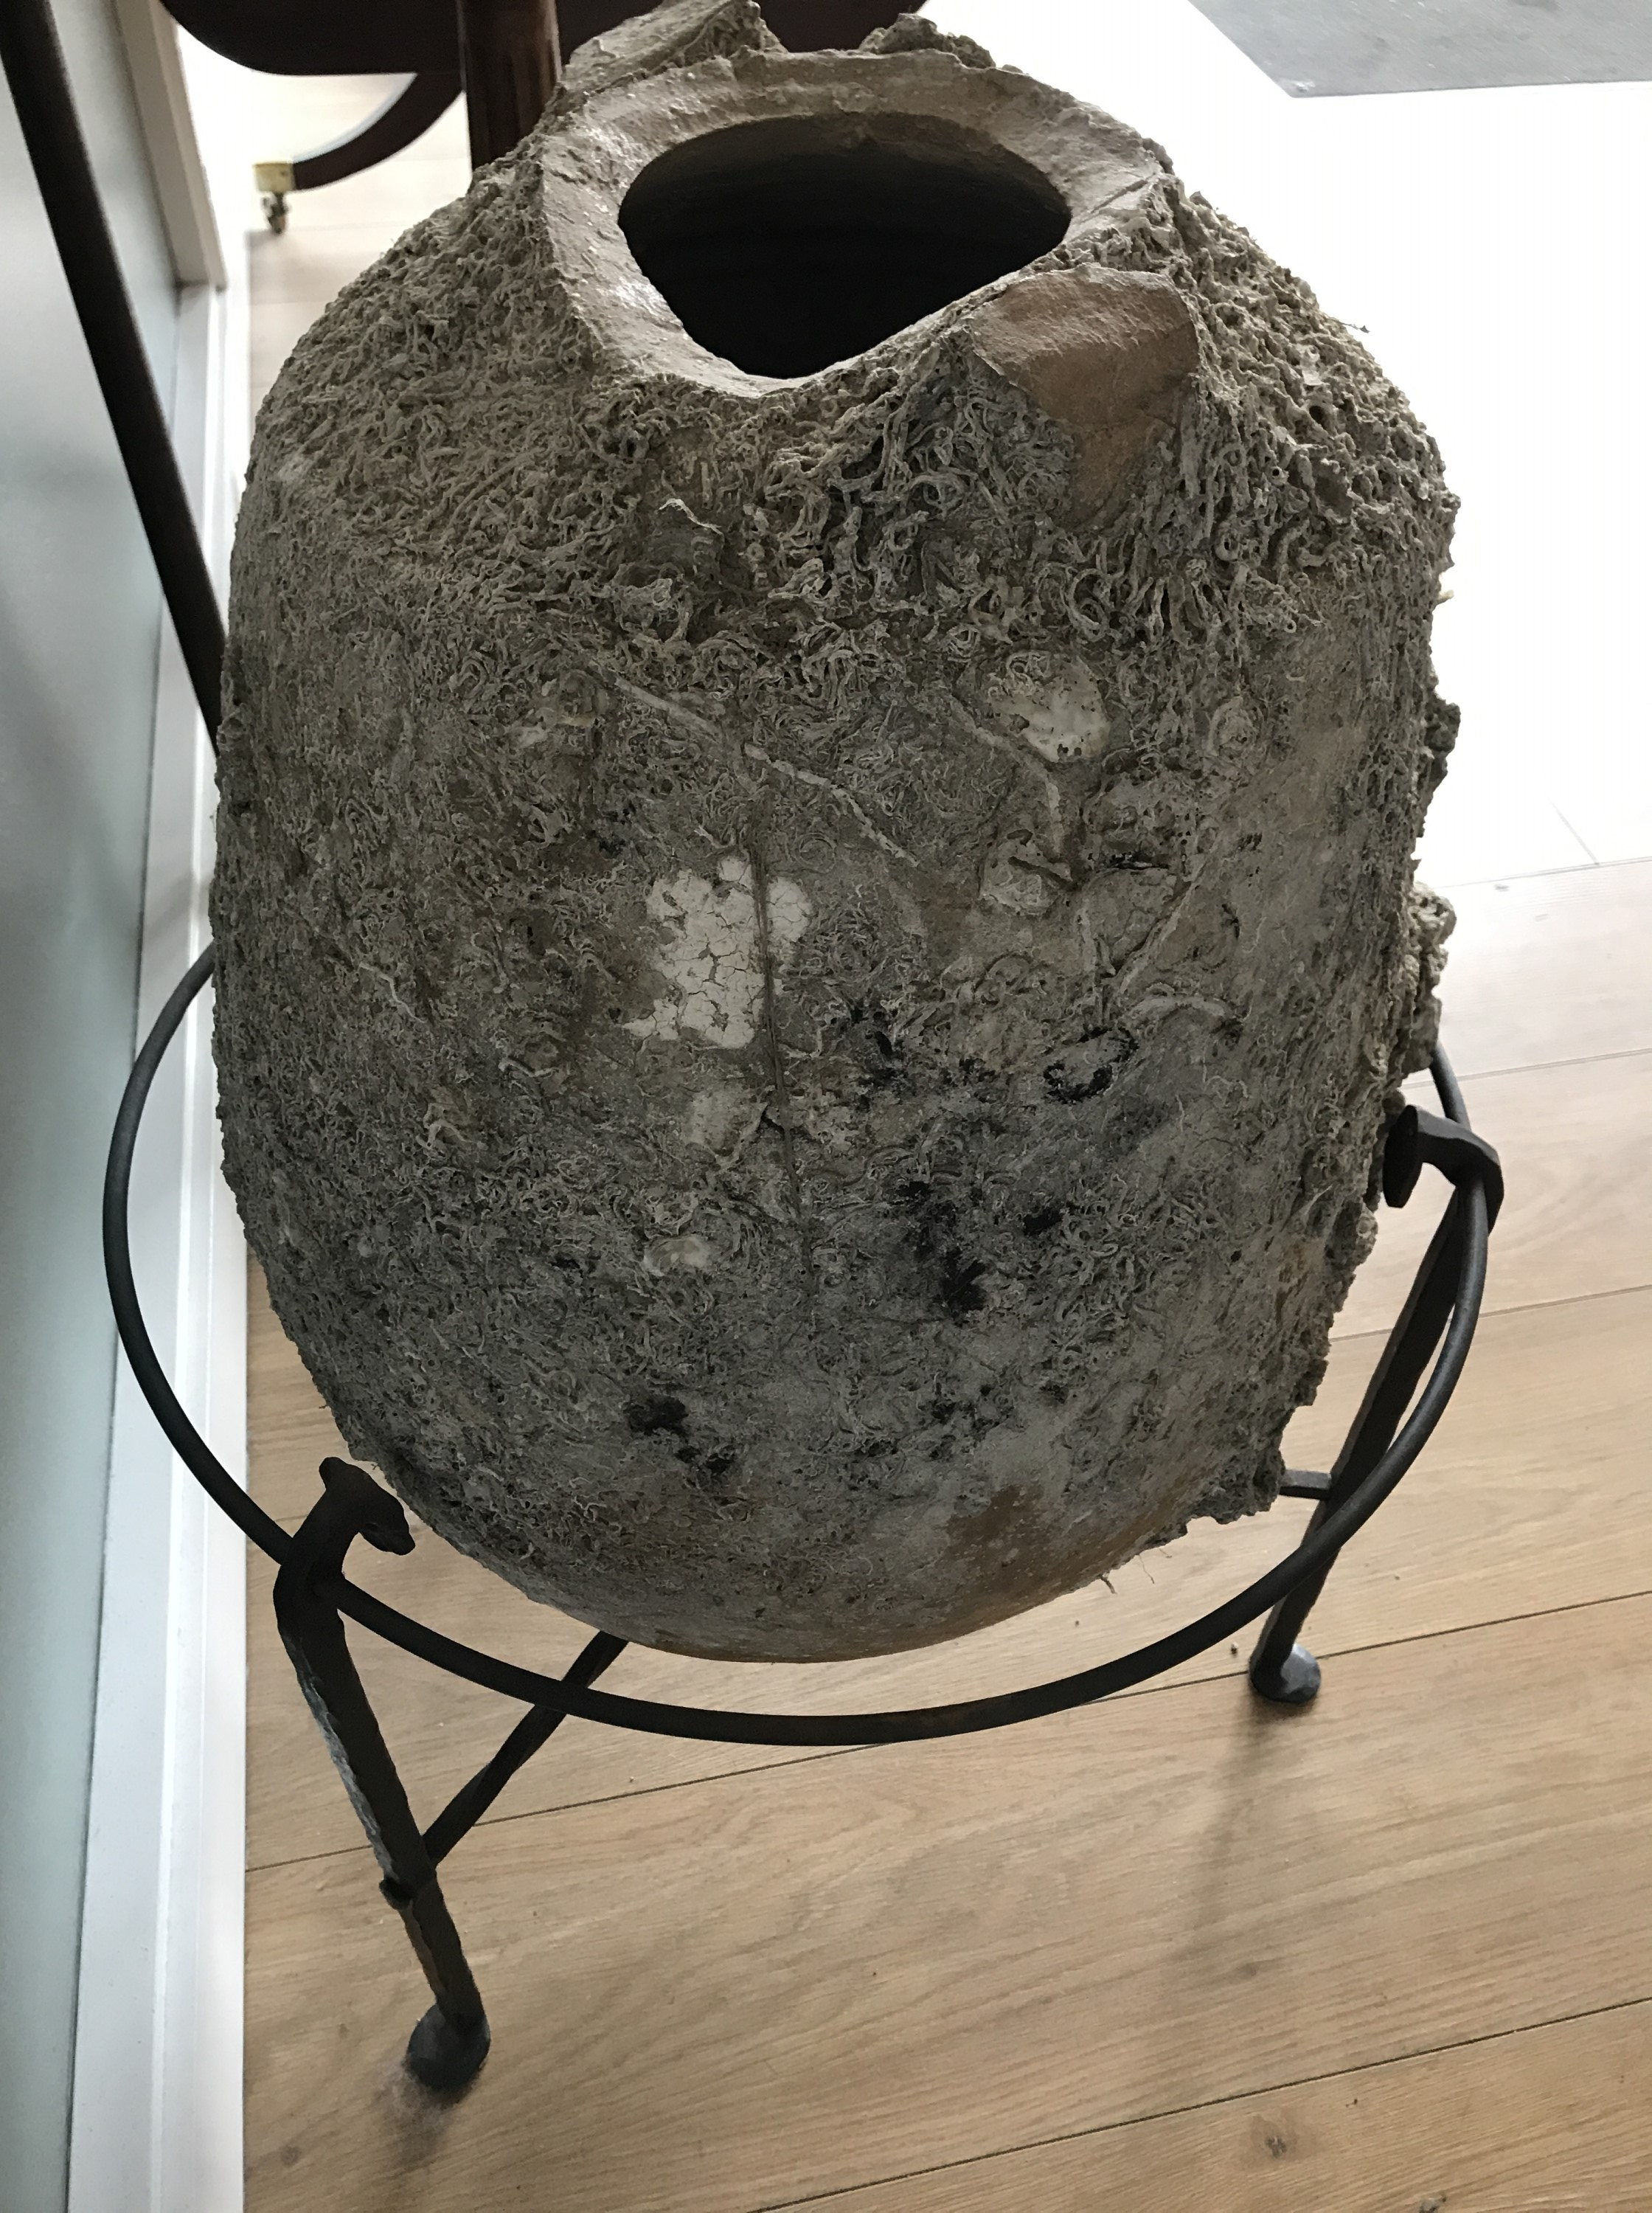 Lot 12 - A classical Graeco-Roman amphora, wreck-recovered and encrusted, on wrought-iron stand, 75 cm